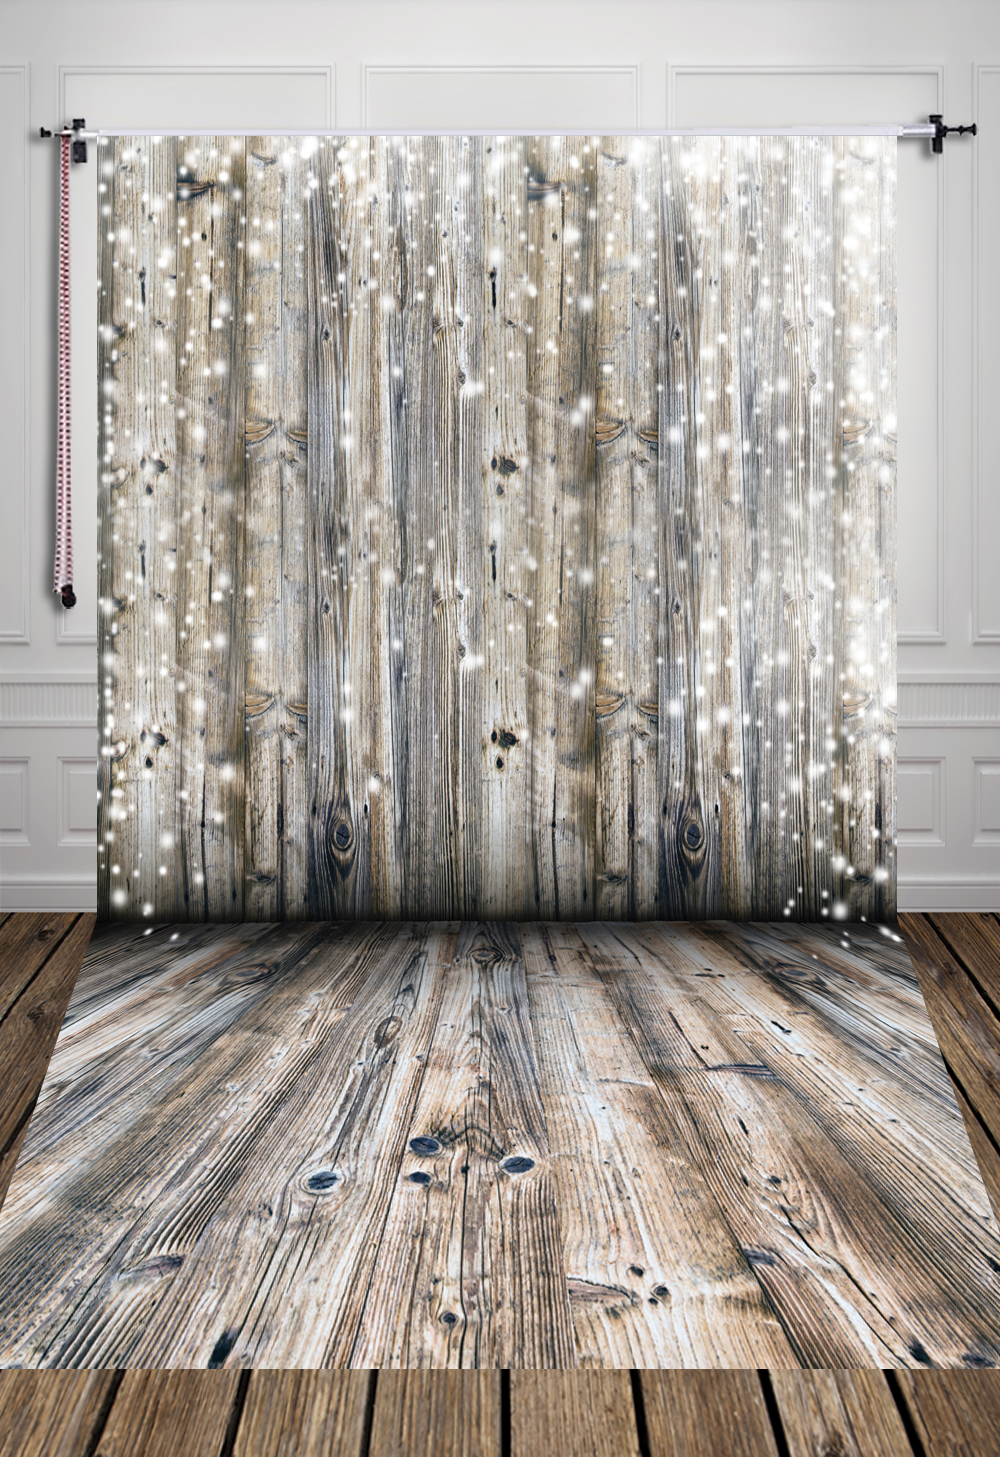 HUAYI Hot Sale Vintage Gray Wood Floor Backdrop Wood Planks Art Fabric  Newborn Backdrop D- - Popular Wooden Floor Sale-Buy Cheap Wooden Floor Sale Lots From